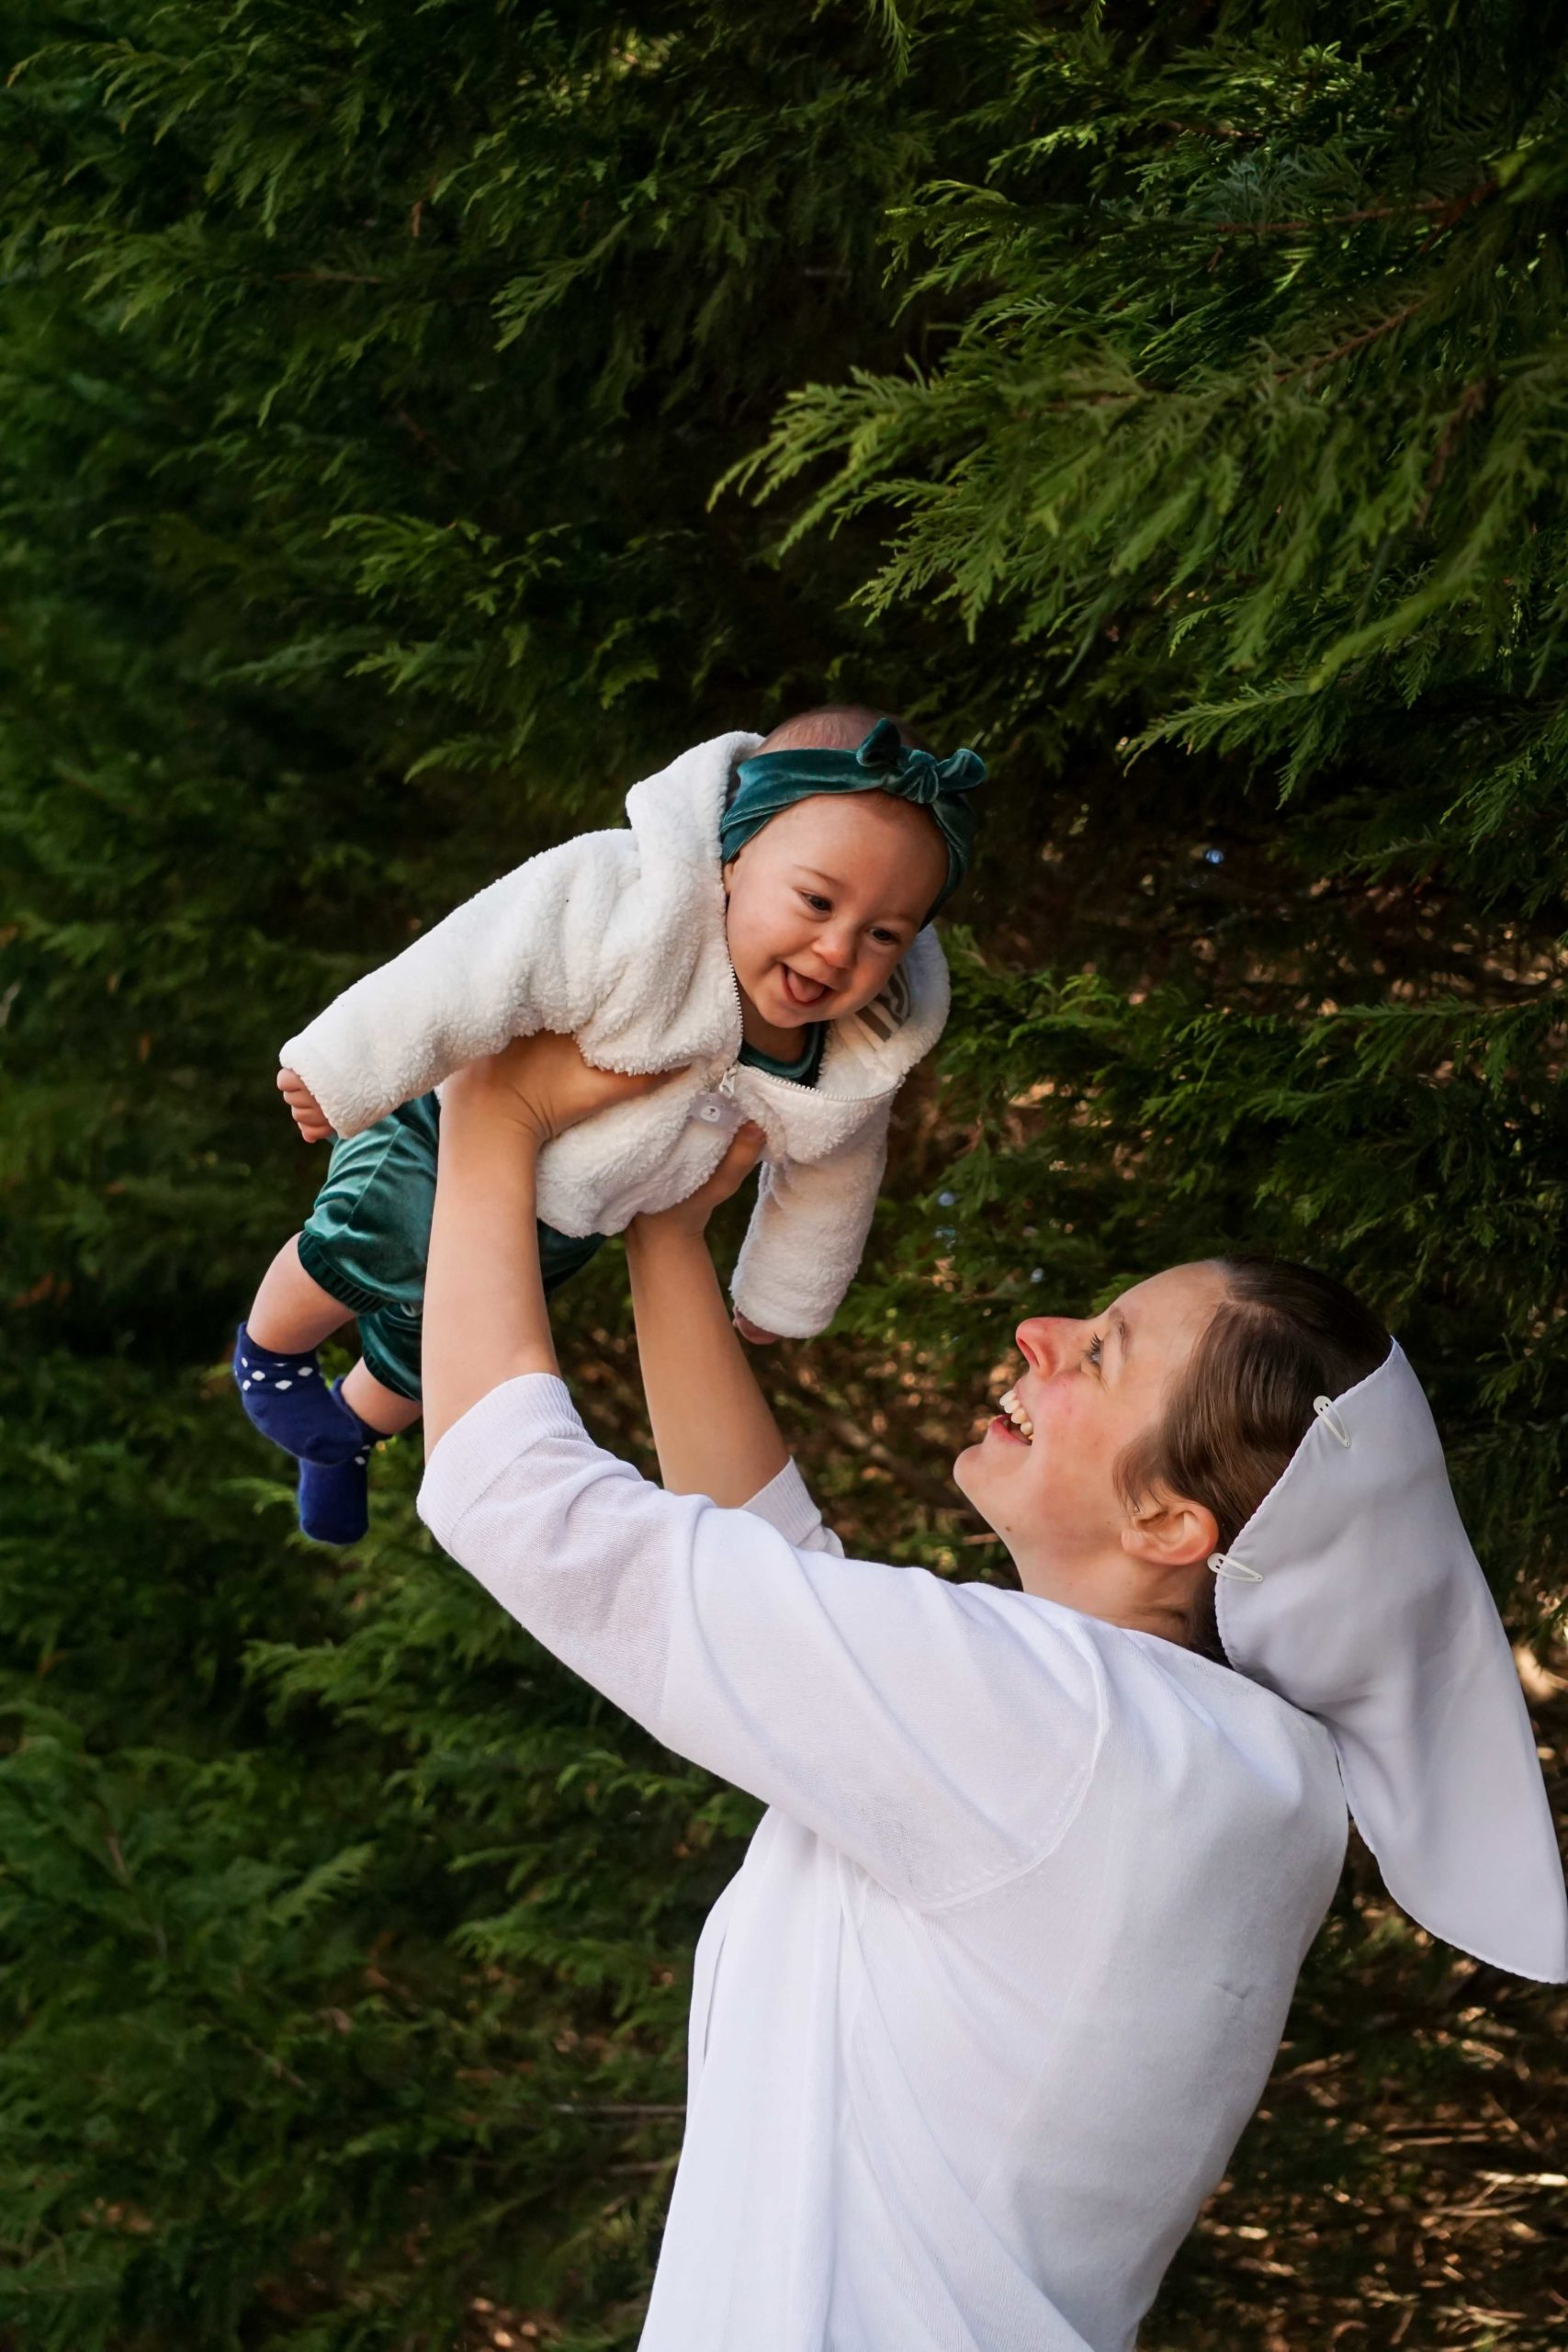 The pictures in this post are taken in front of some Leland Cyprus evergreen trees, which make for a rich, deep green background. Briana is wearing a white dress with a white open-down-the-front sweater and has a white prayer veiling on her head. Hadassah is wearing a green velour romper with matching headband, a fluffy white jacket, and navy socks with white polka dots. In this picture, Briana is holding Hadassah up in the air over her head. Both are smiling!